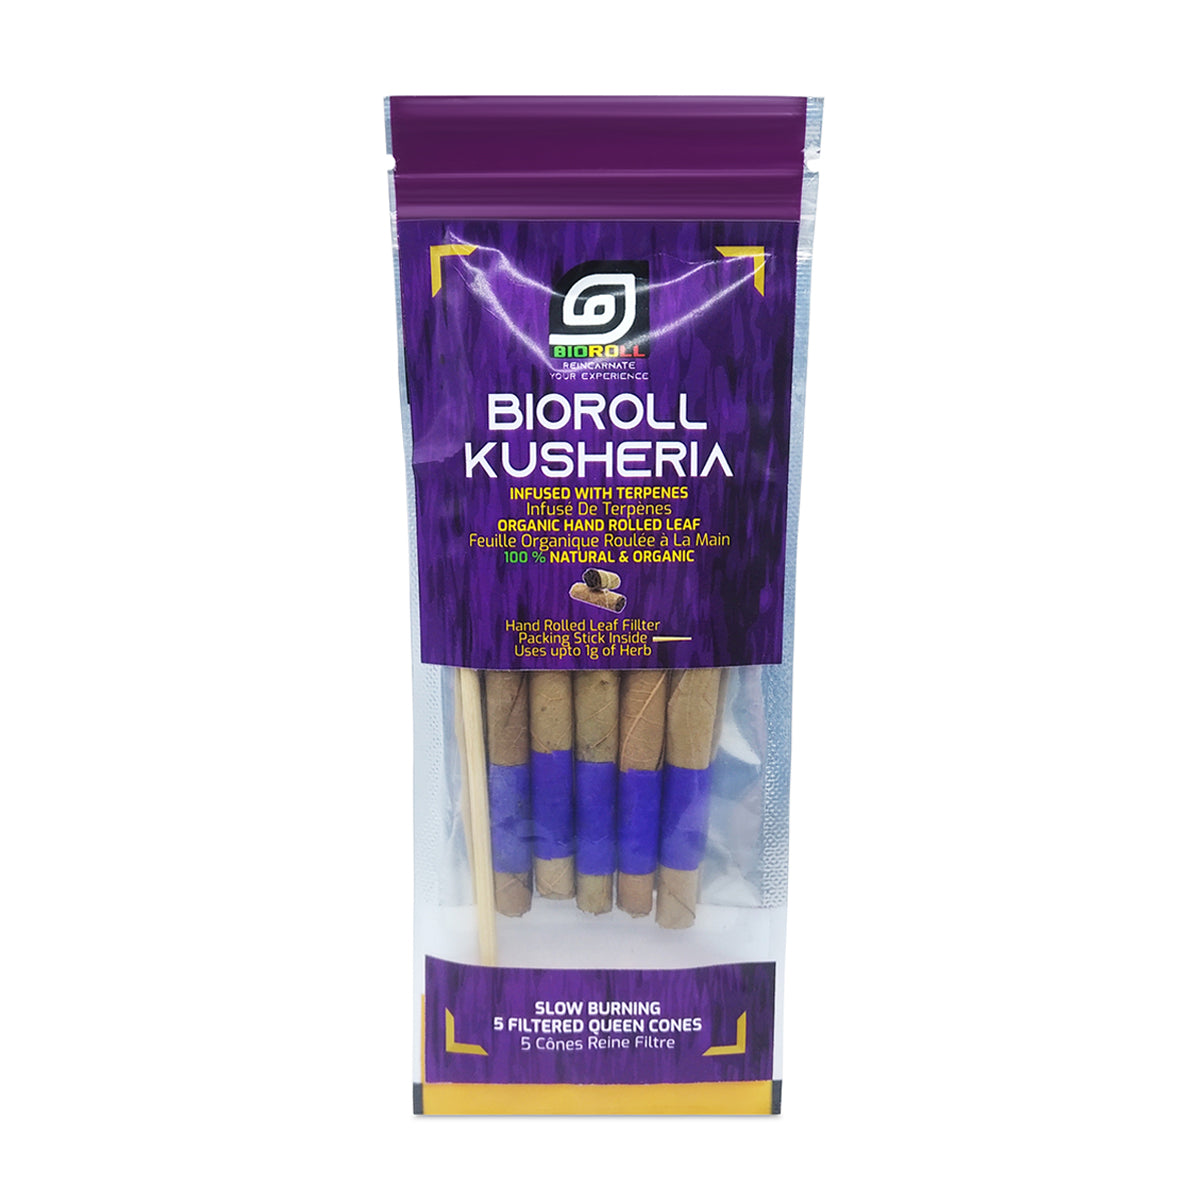 BioRoll™ Kusheria Filtered Terpene Infused Prerolled Cones